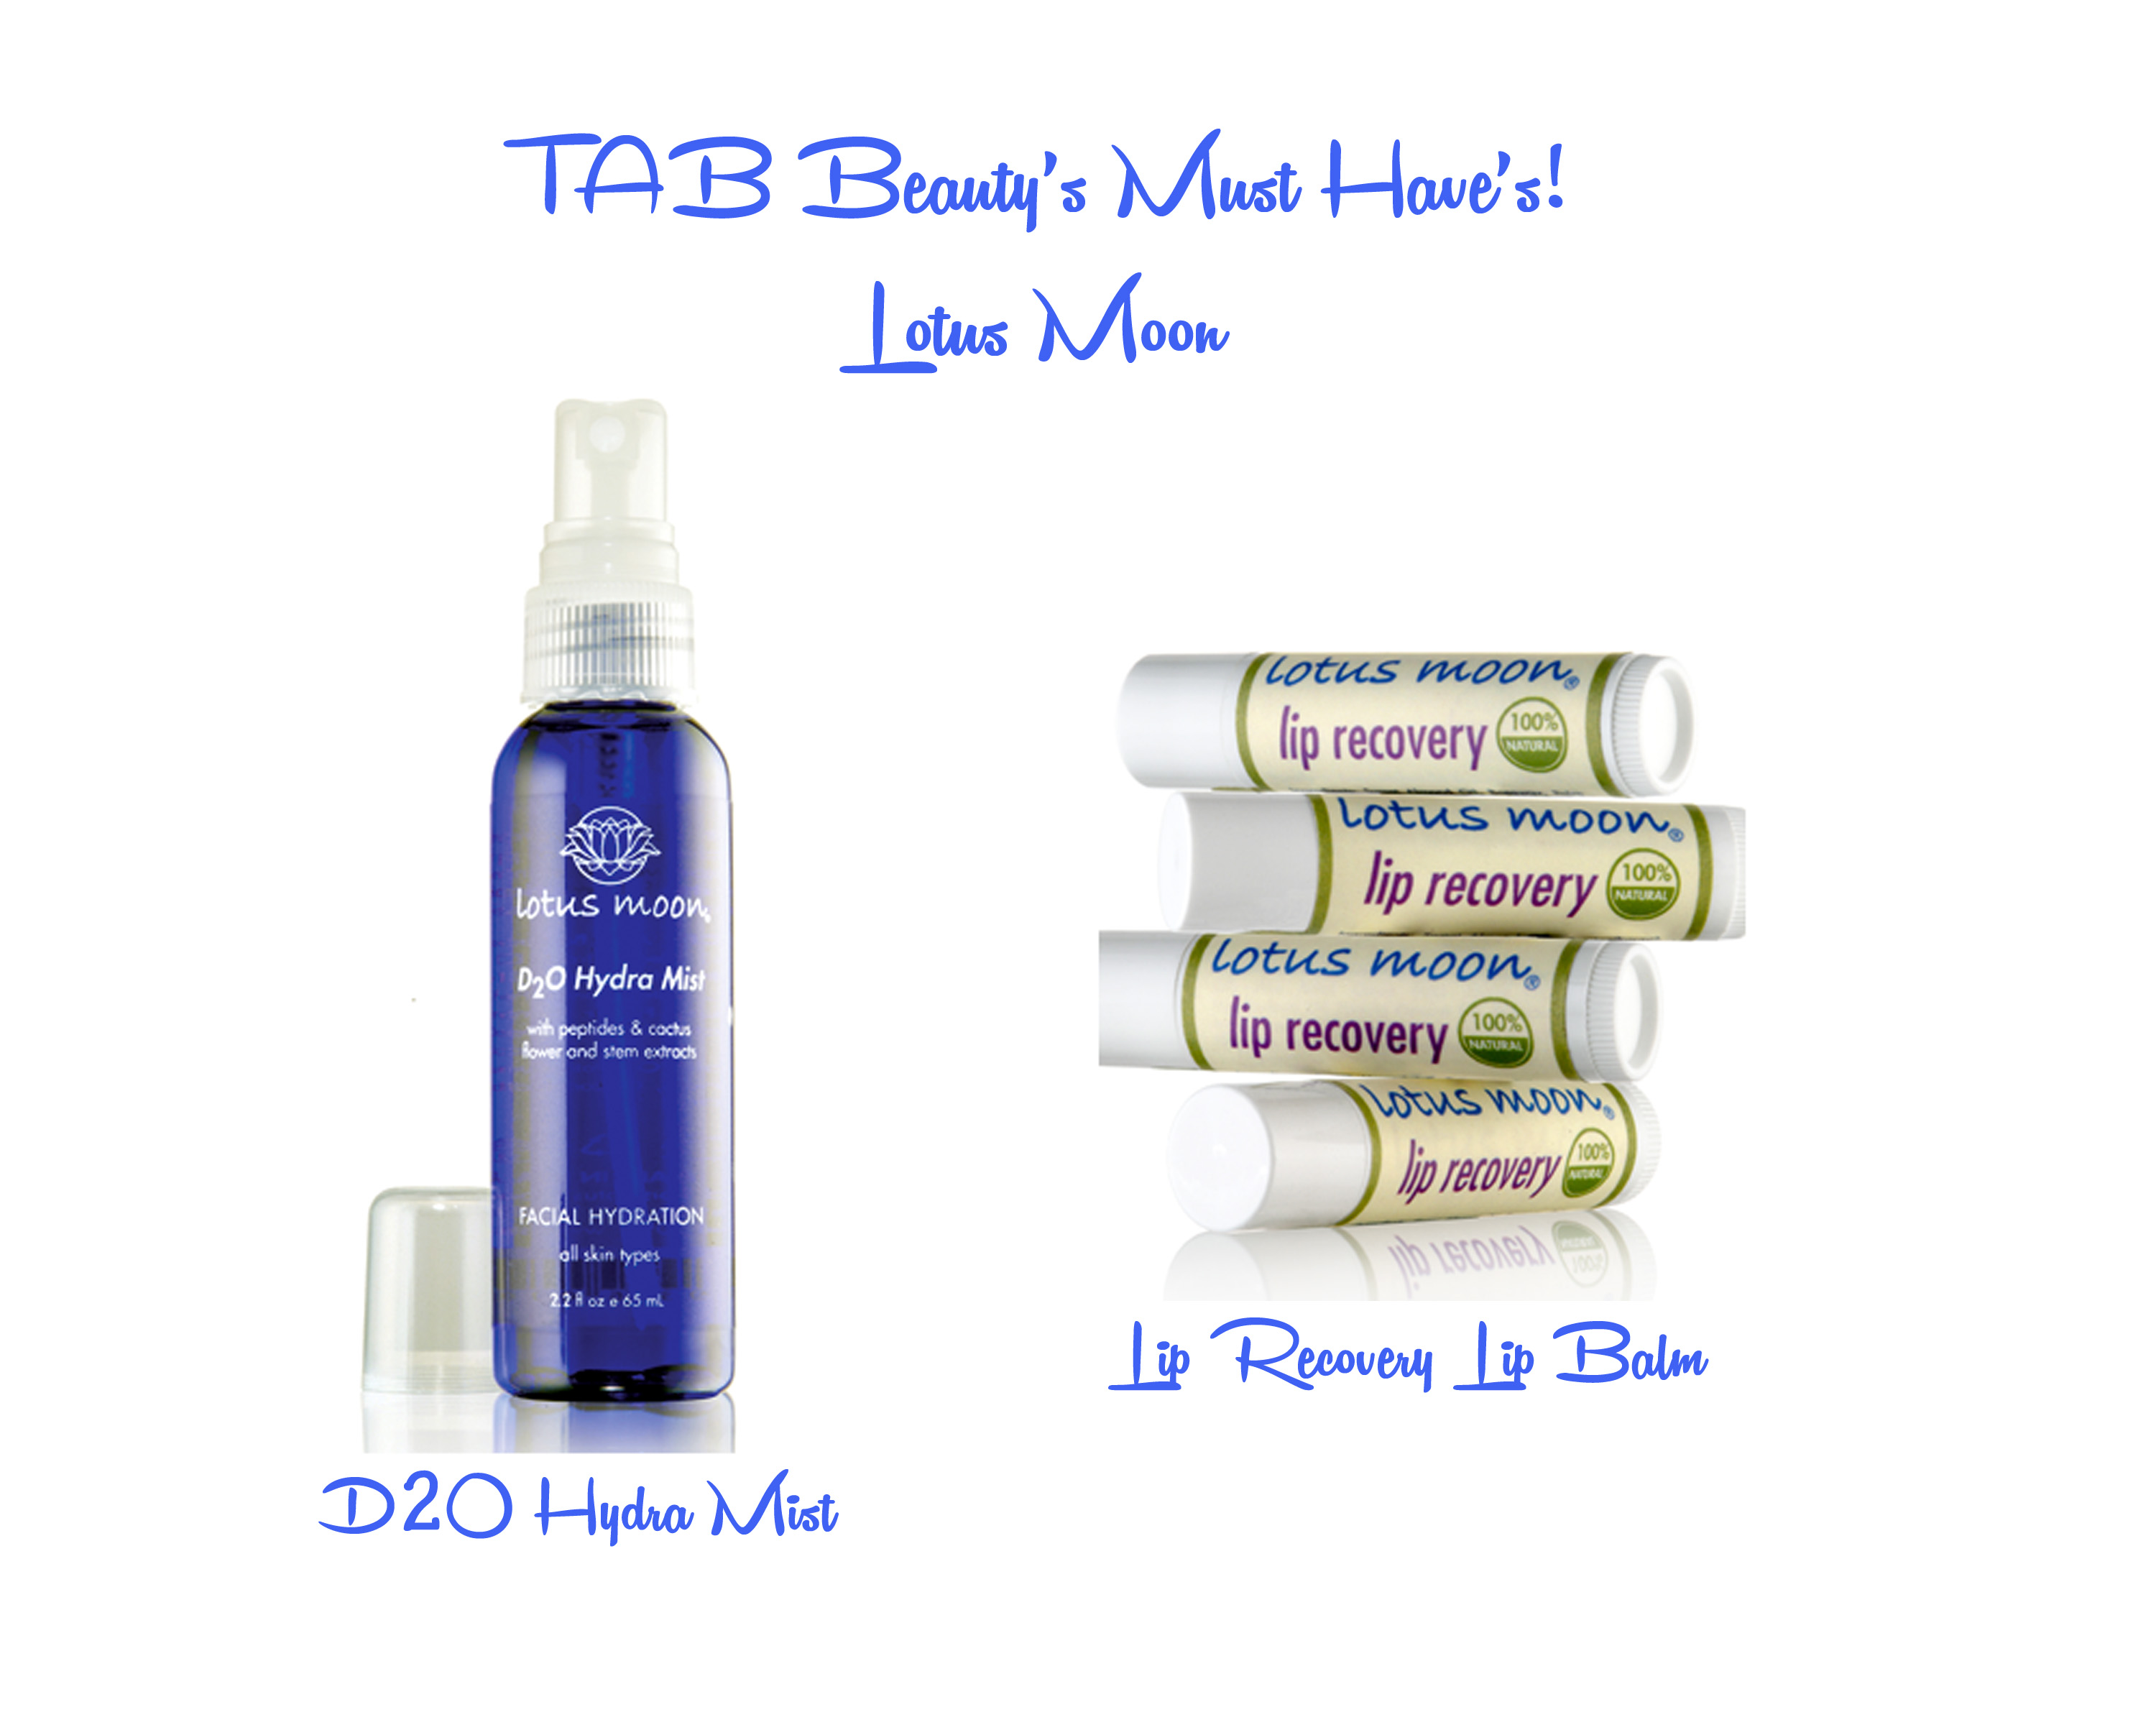 The Anti Bridezilla Lotus Moon Travel Essentials Skincare Kit Giveaway